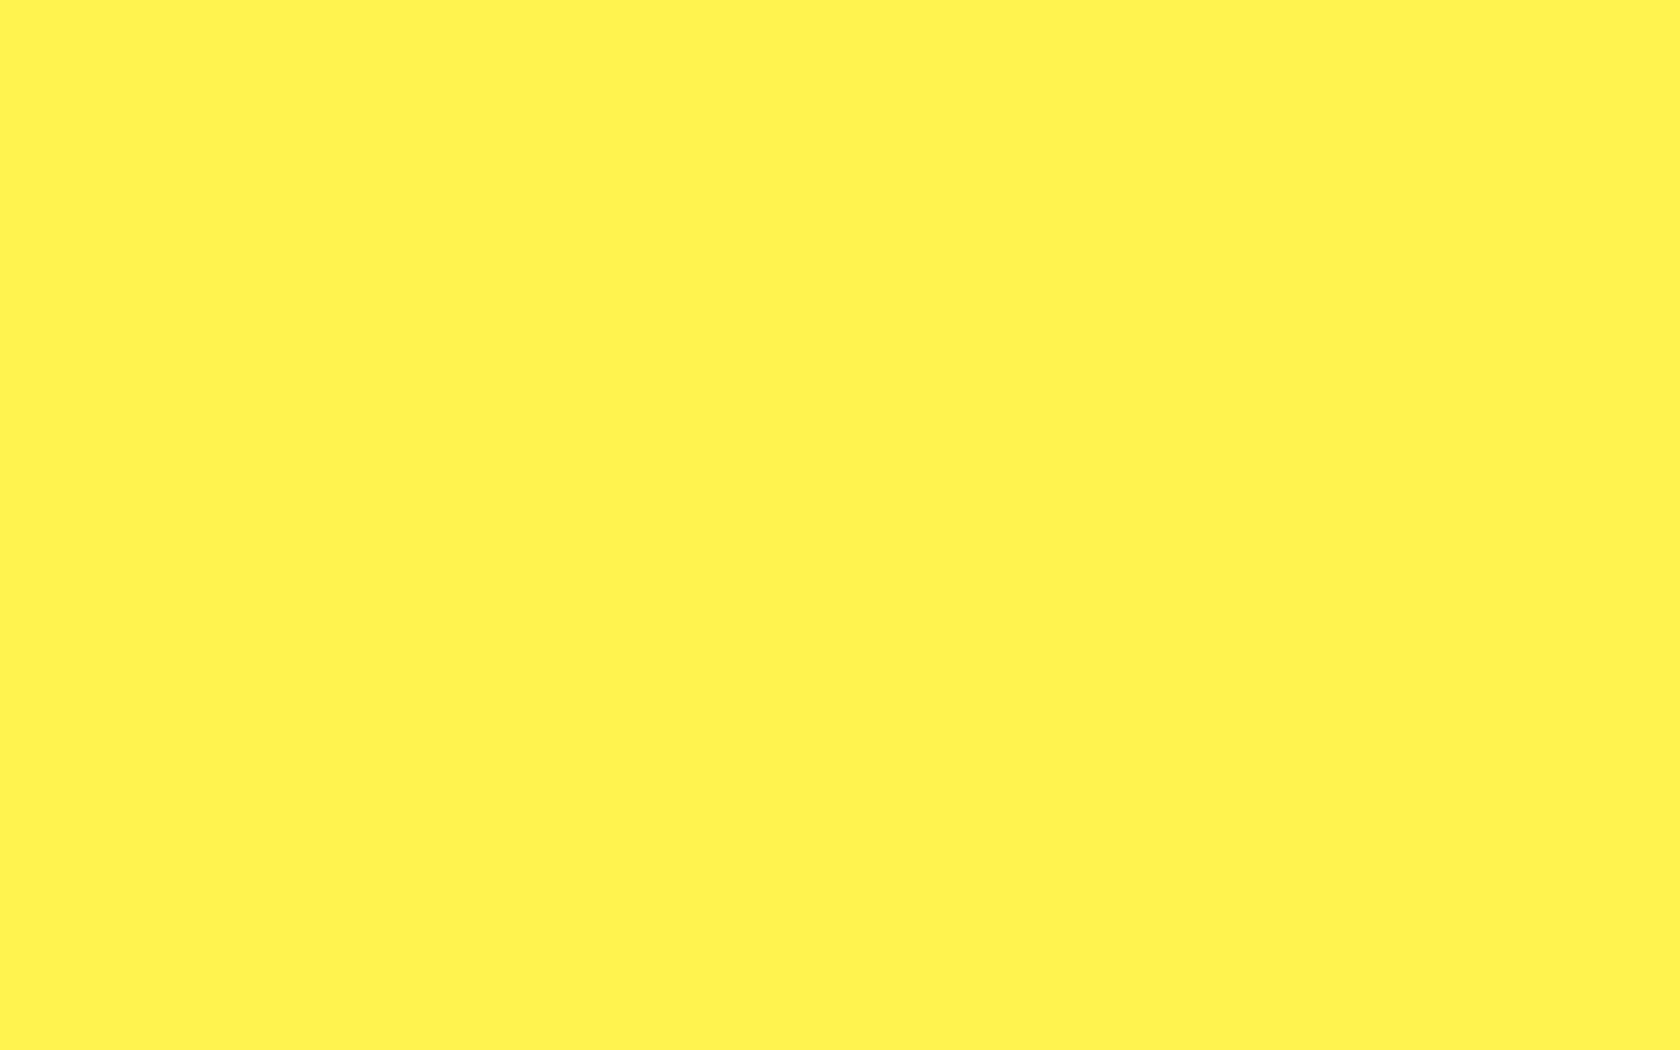 1680x1050 Lemon Yellow Solid Color Background